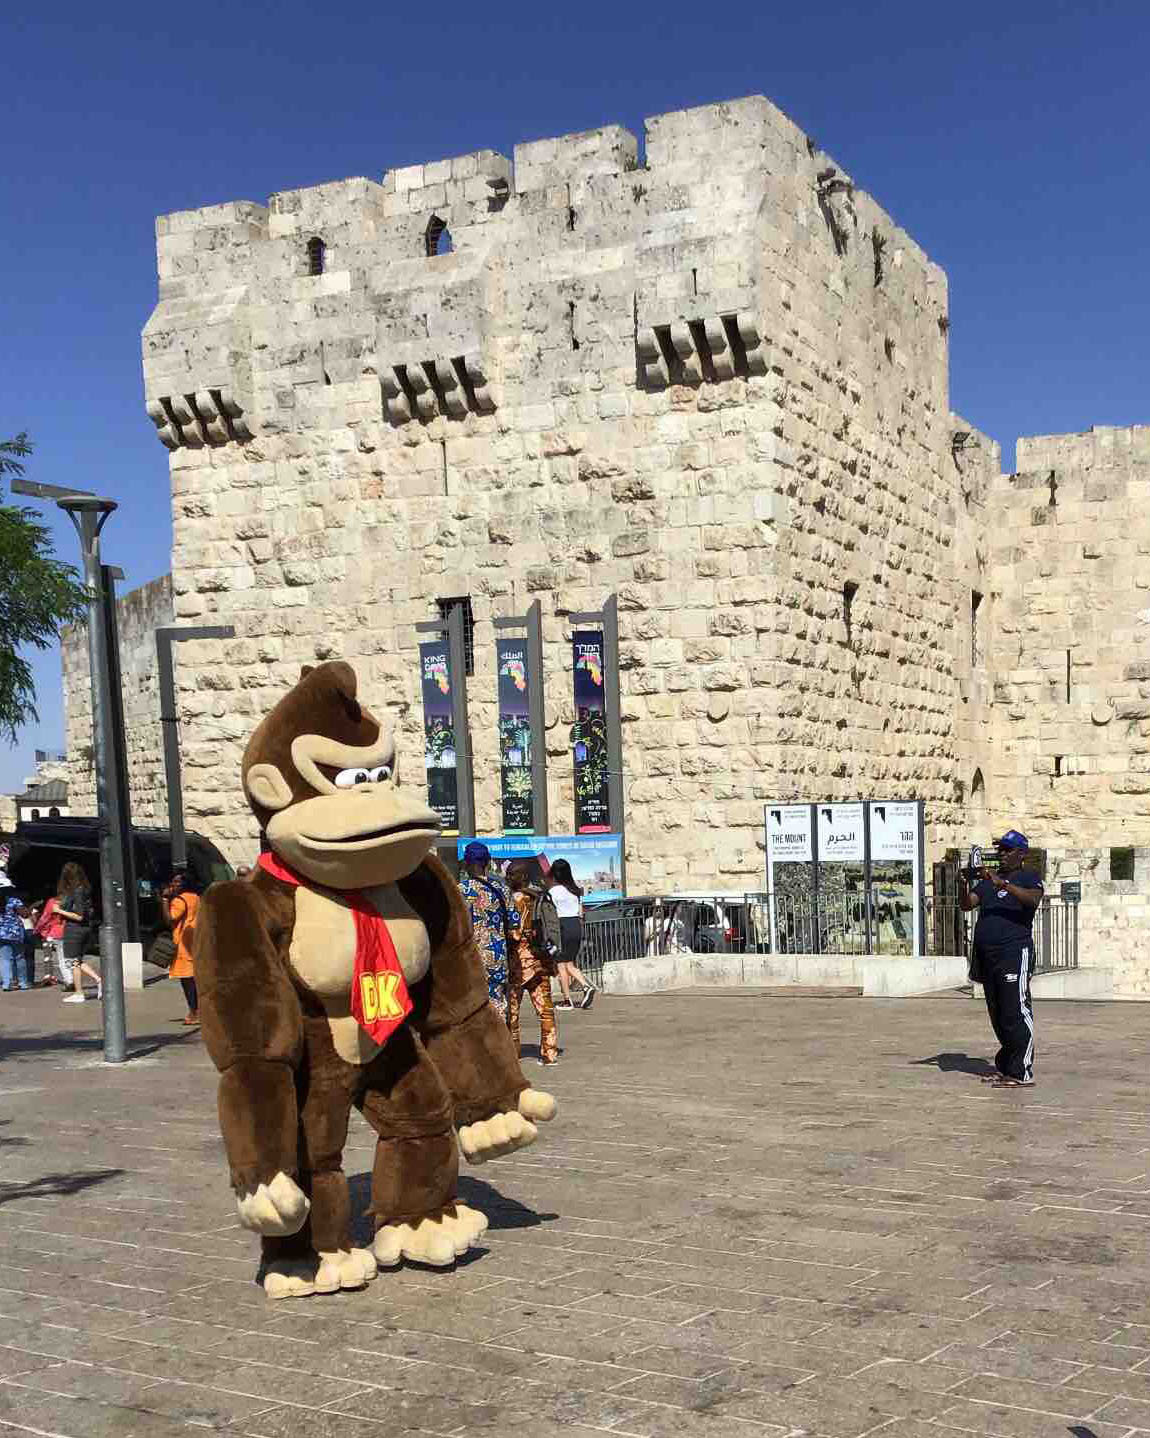 Donkey Kong near Jaffa Gate in Old City.